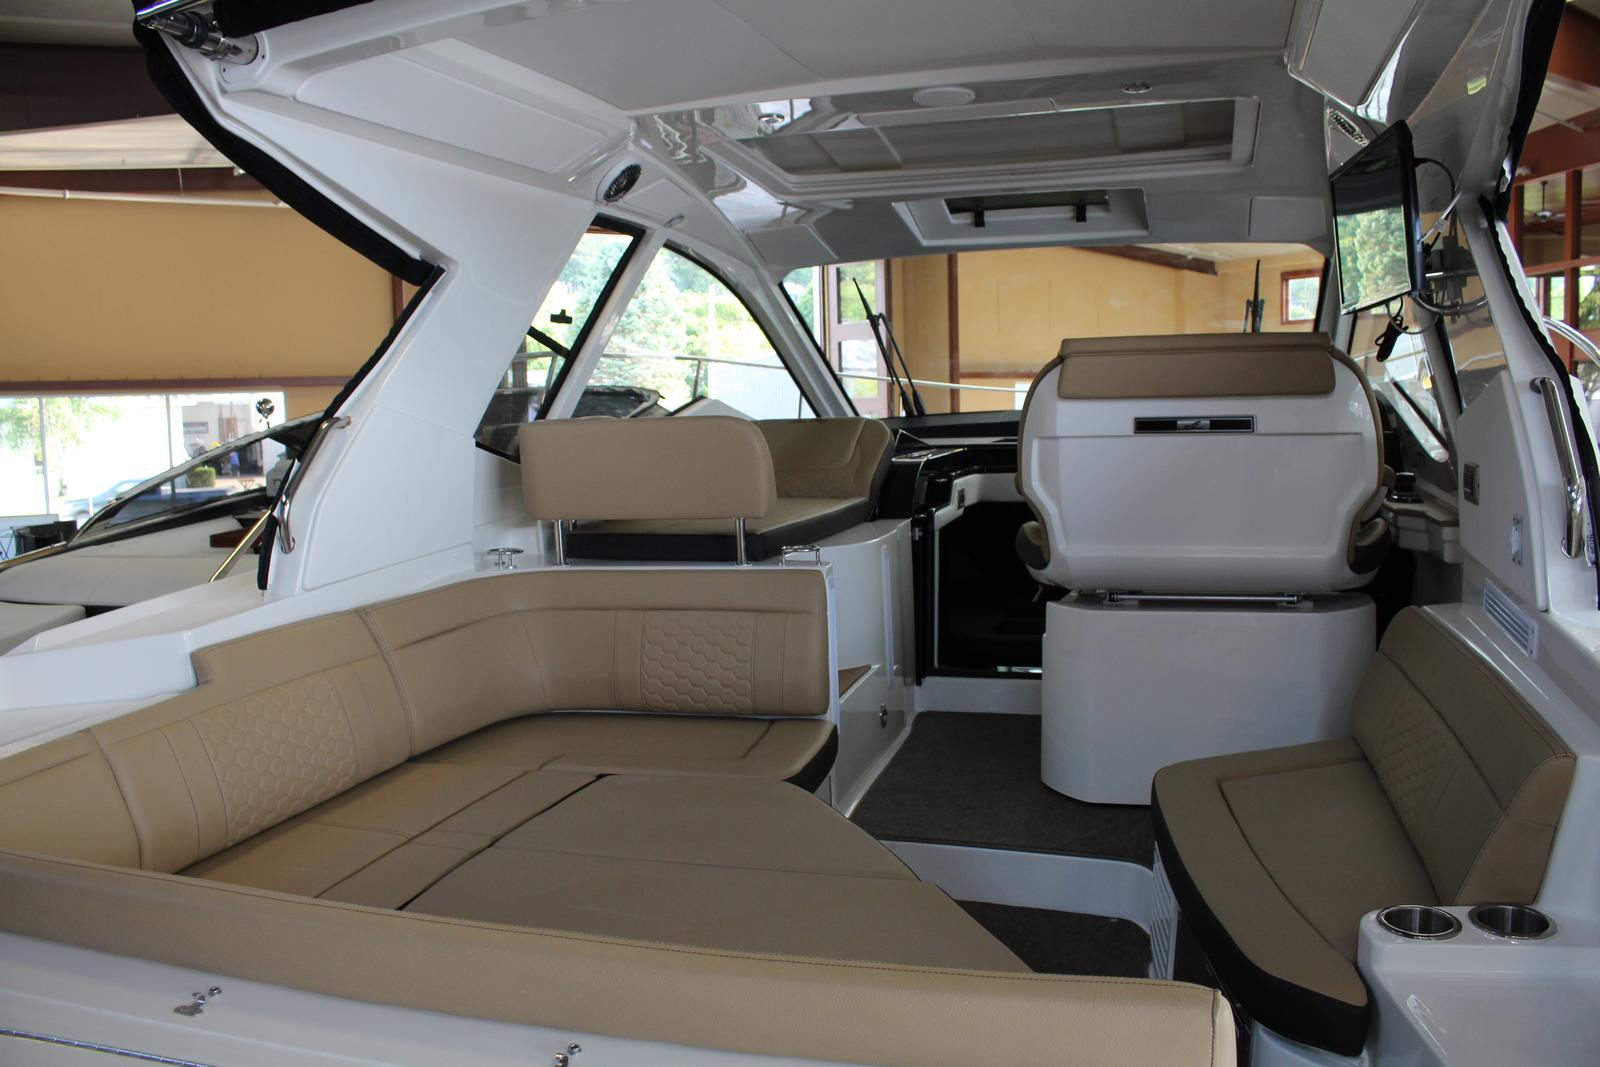 sea ray warranty 12 volt coil wiring diagram 2018 sundancer 350 coupe for sale in harbor springs mi img 3421